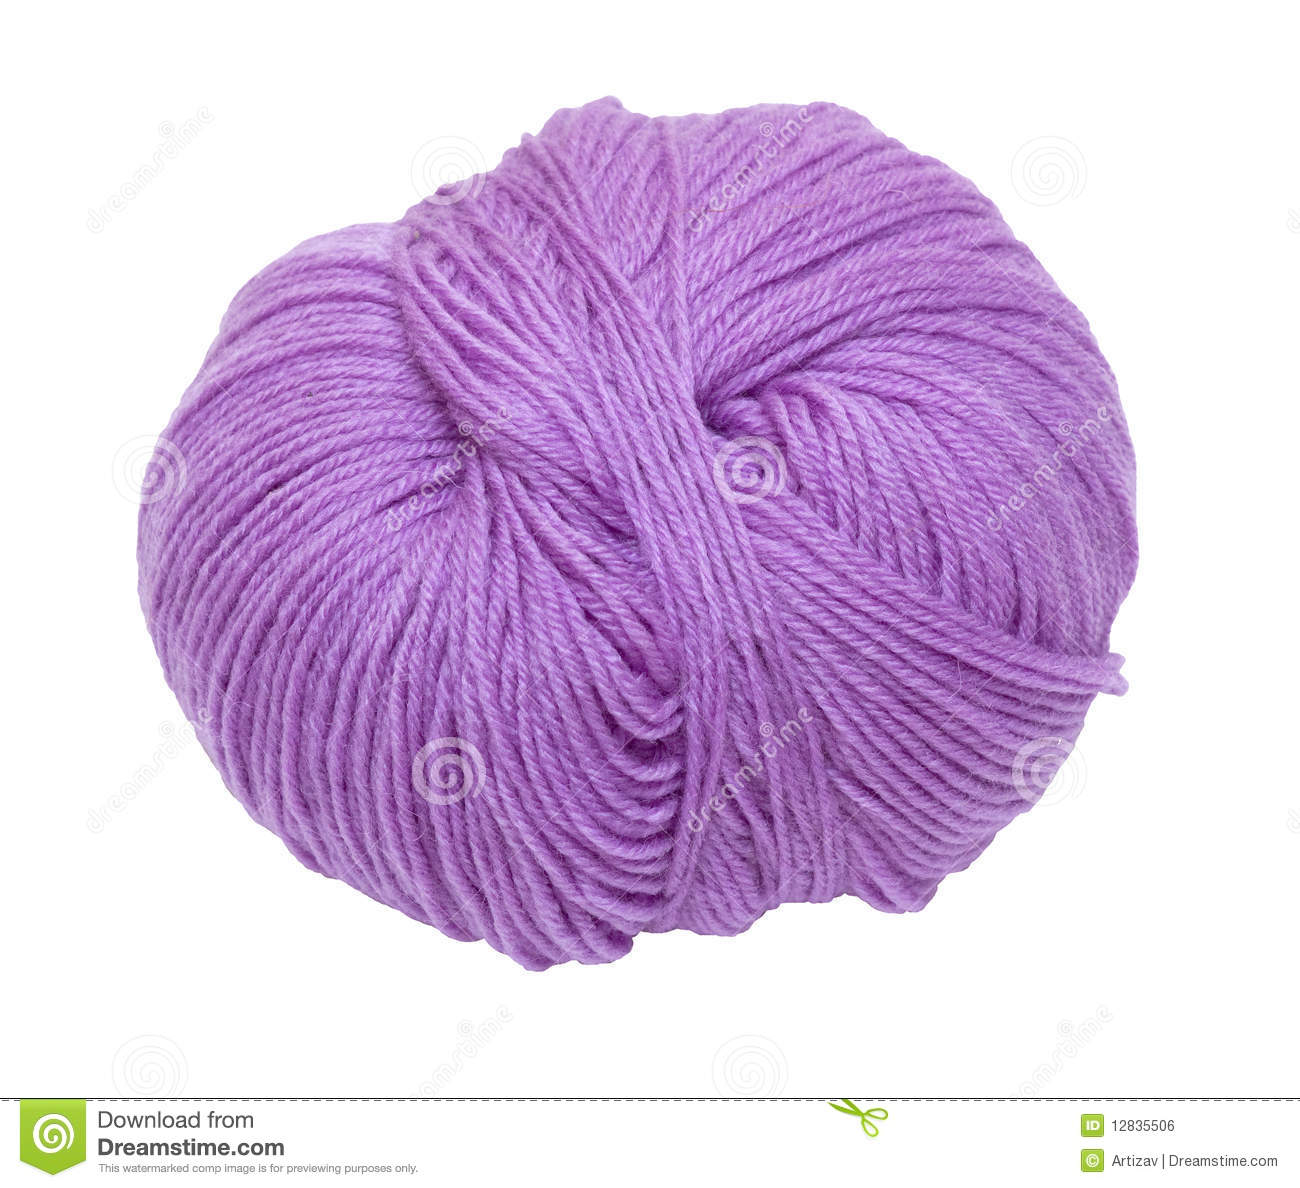 garments yarn inventory system See more ideas about organizers, organizing and yarn stash  sales contact  management database - templates - officecom - can be used for parent   impress dress with hat and socks - impress dress - free knitting pattern - pickles.